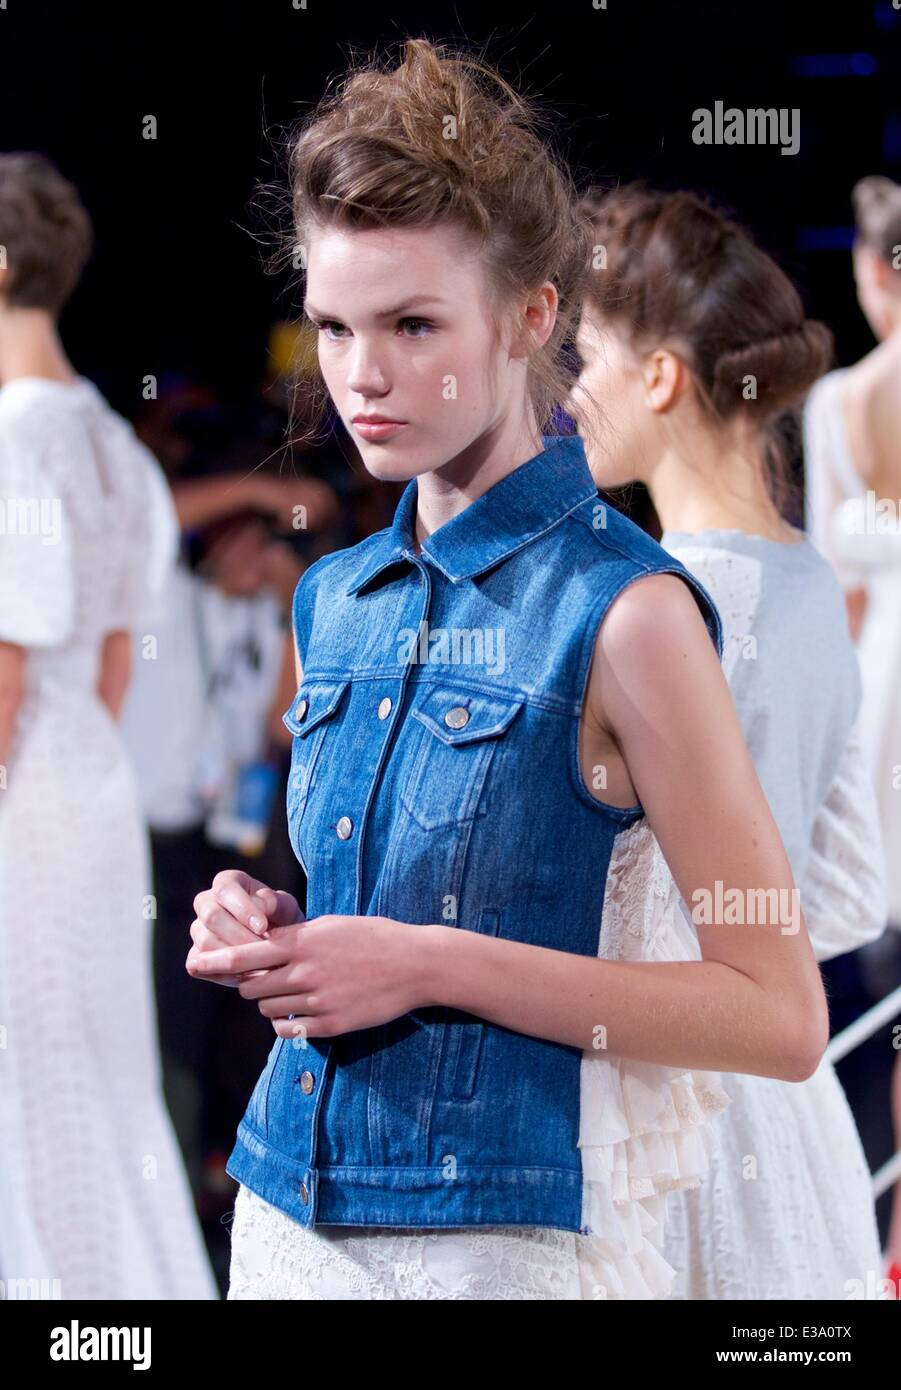 Gabriela Perezutti, Candela Designer Presenting her New Collection at The Box during NYFW in NYC  Featuring: Atmosphere - Stock Image